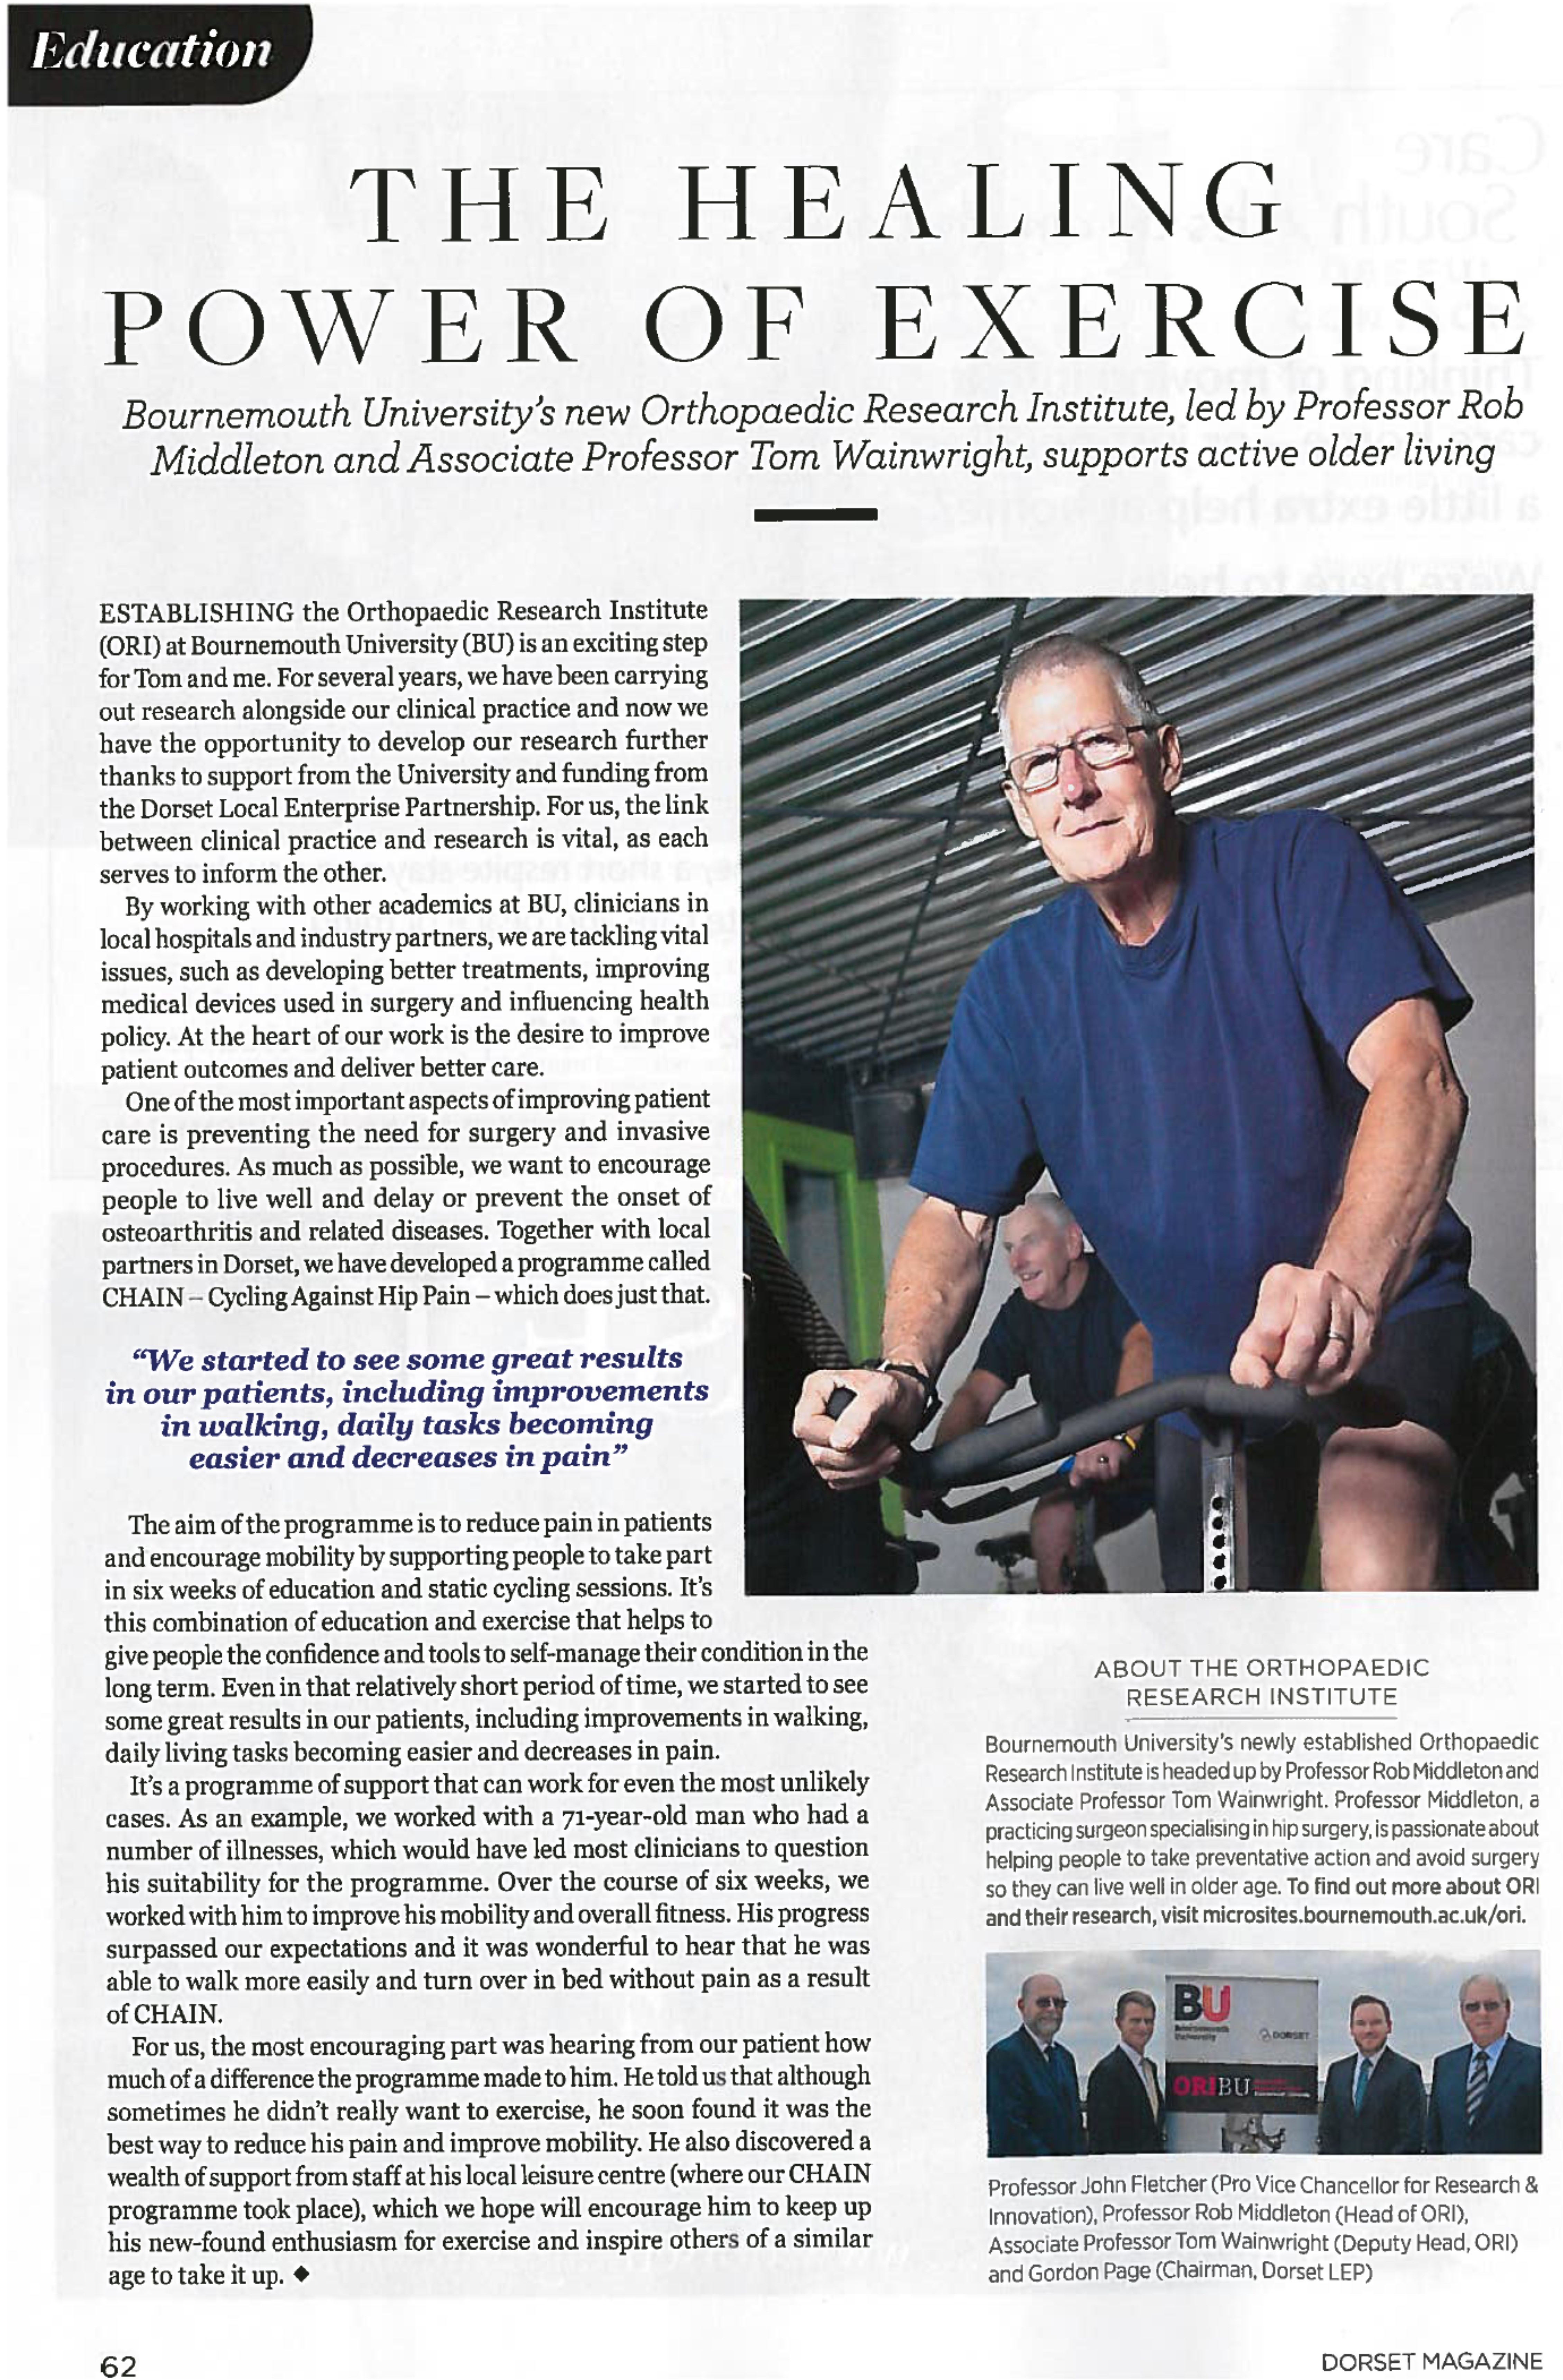 Bournemouth university's new Orthopaedic Research Institute, led by Professor Robert Middleton and Associate Professor Tom Wainwright, supports active older living